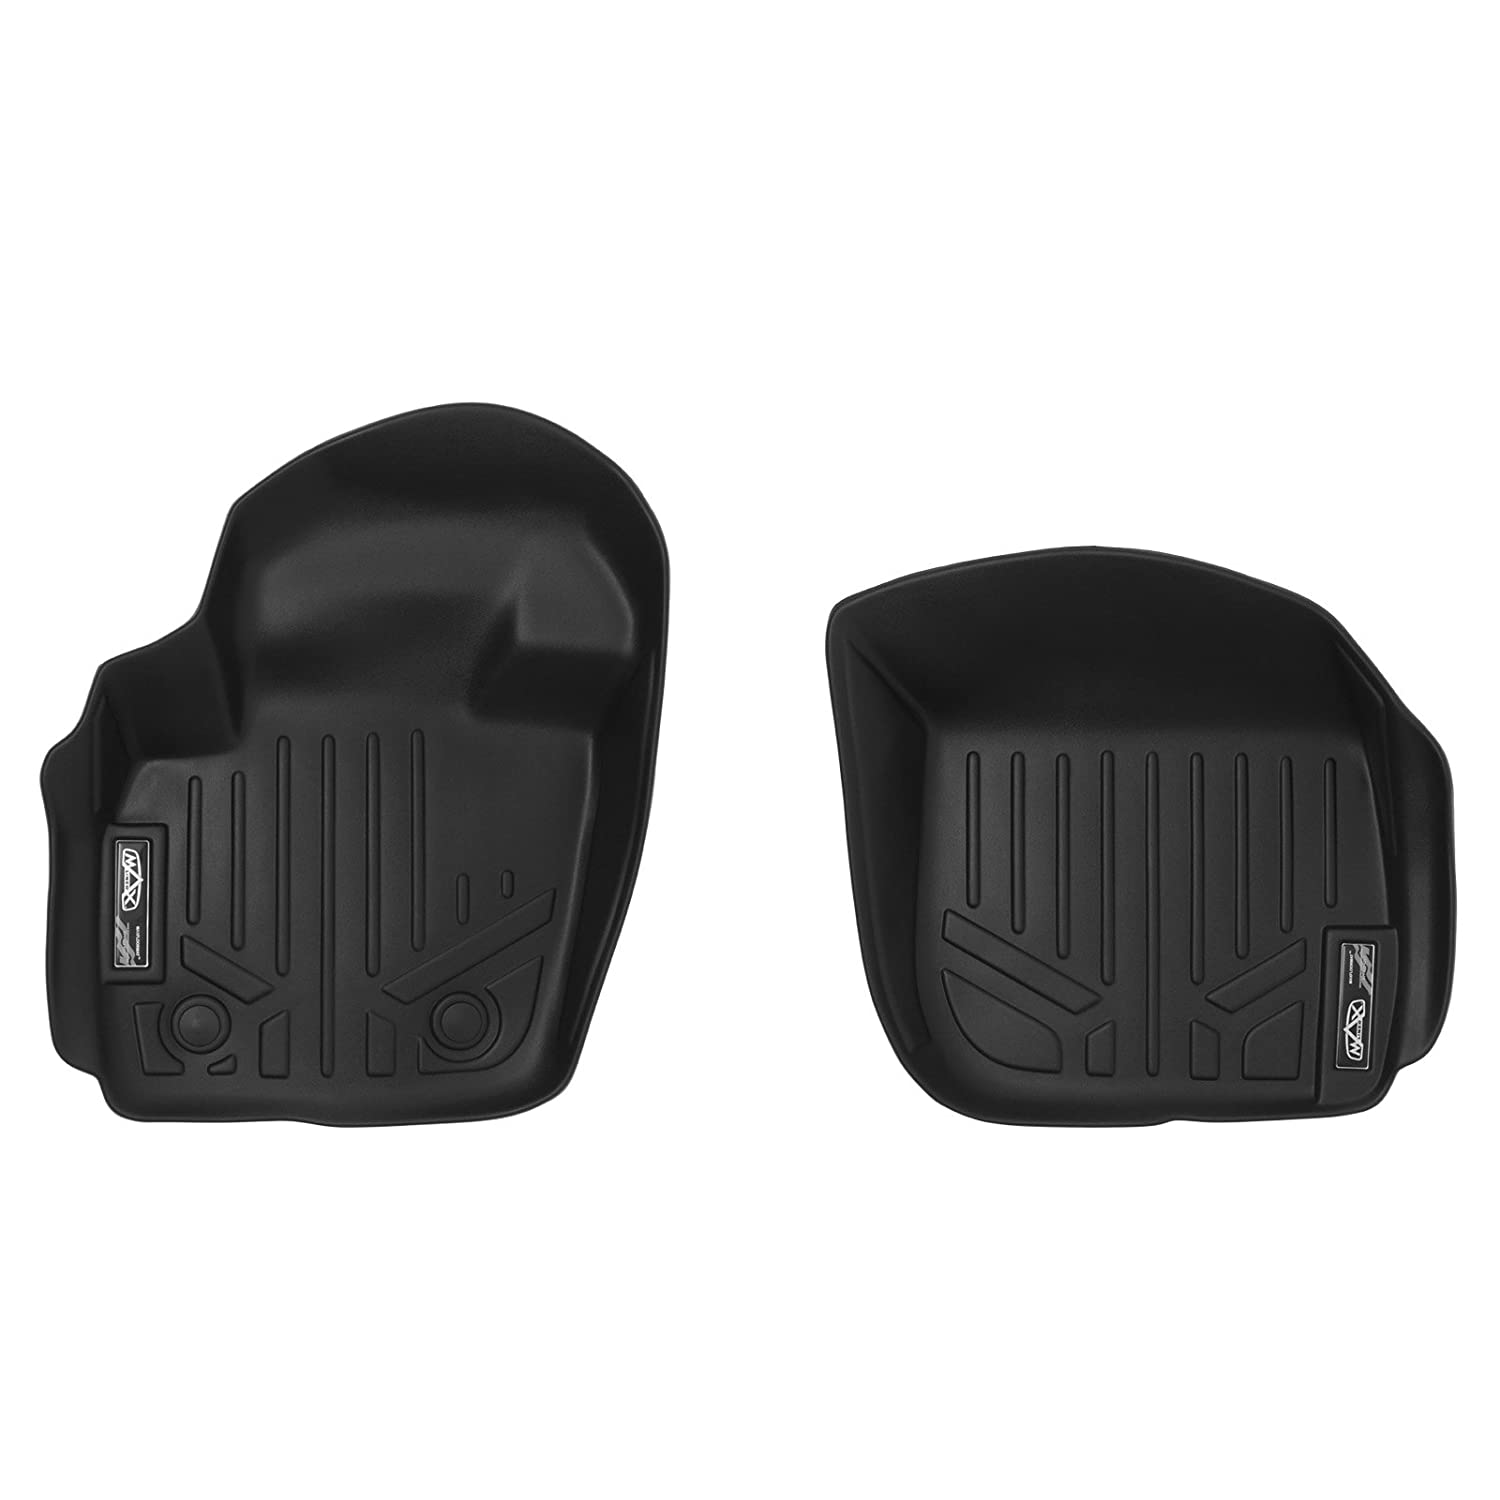 MAXLINER A0133 Floor Mats for Ford Fusion/Lincoln MKZ, 2013-2017 1st Row Set, Black